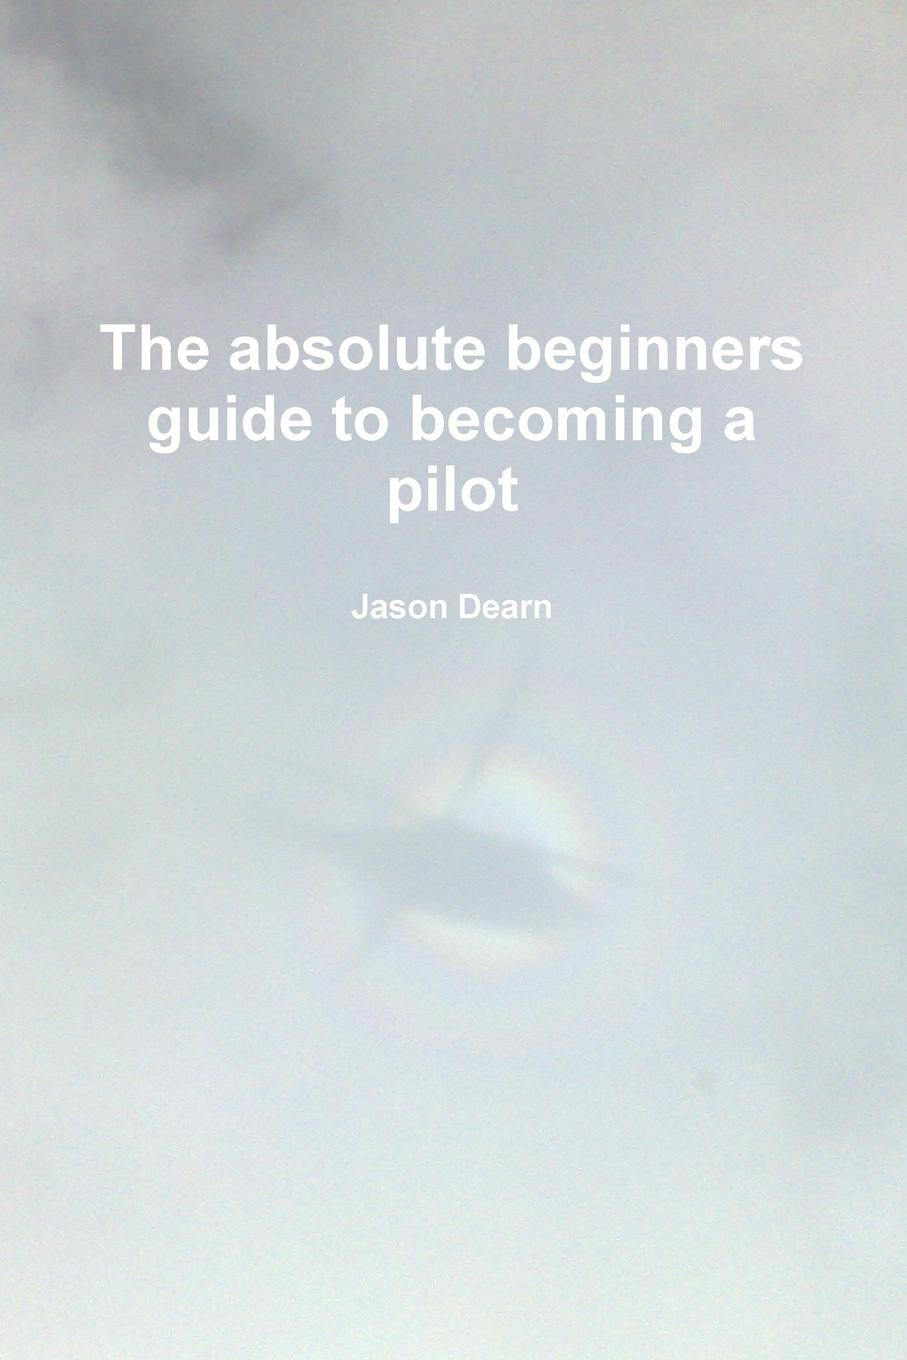 Jason Dearn The Absolute Beginners Guide to Becoming a Pilot the conran beginners guide to decorating